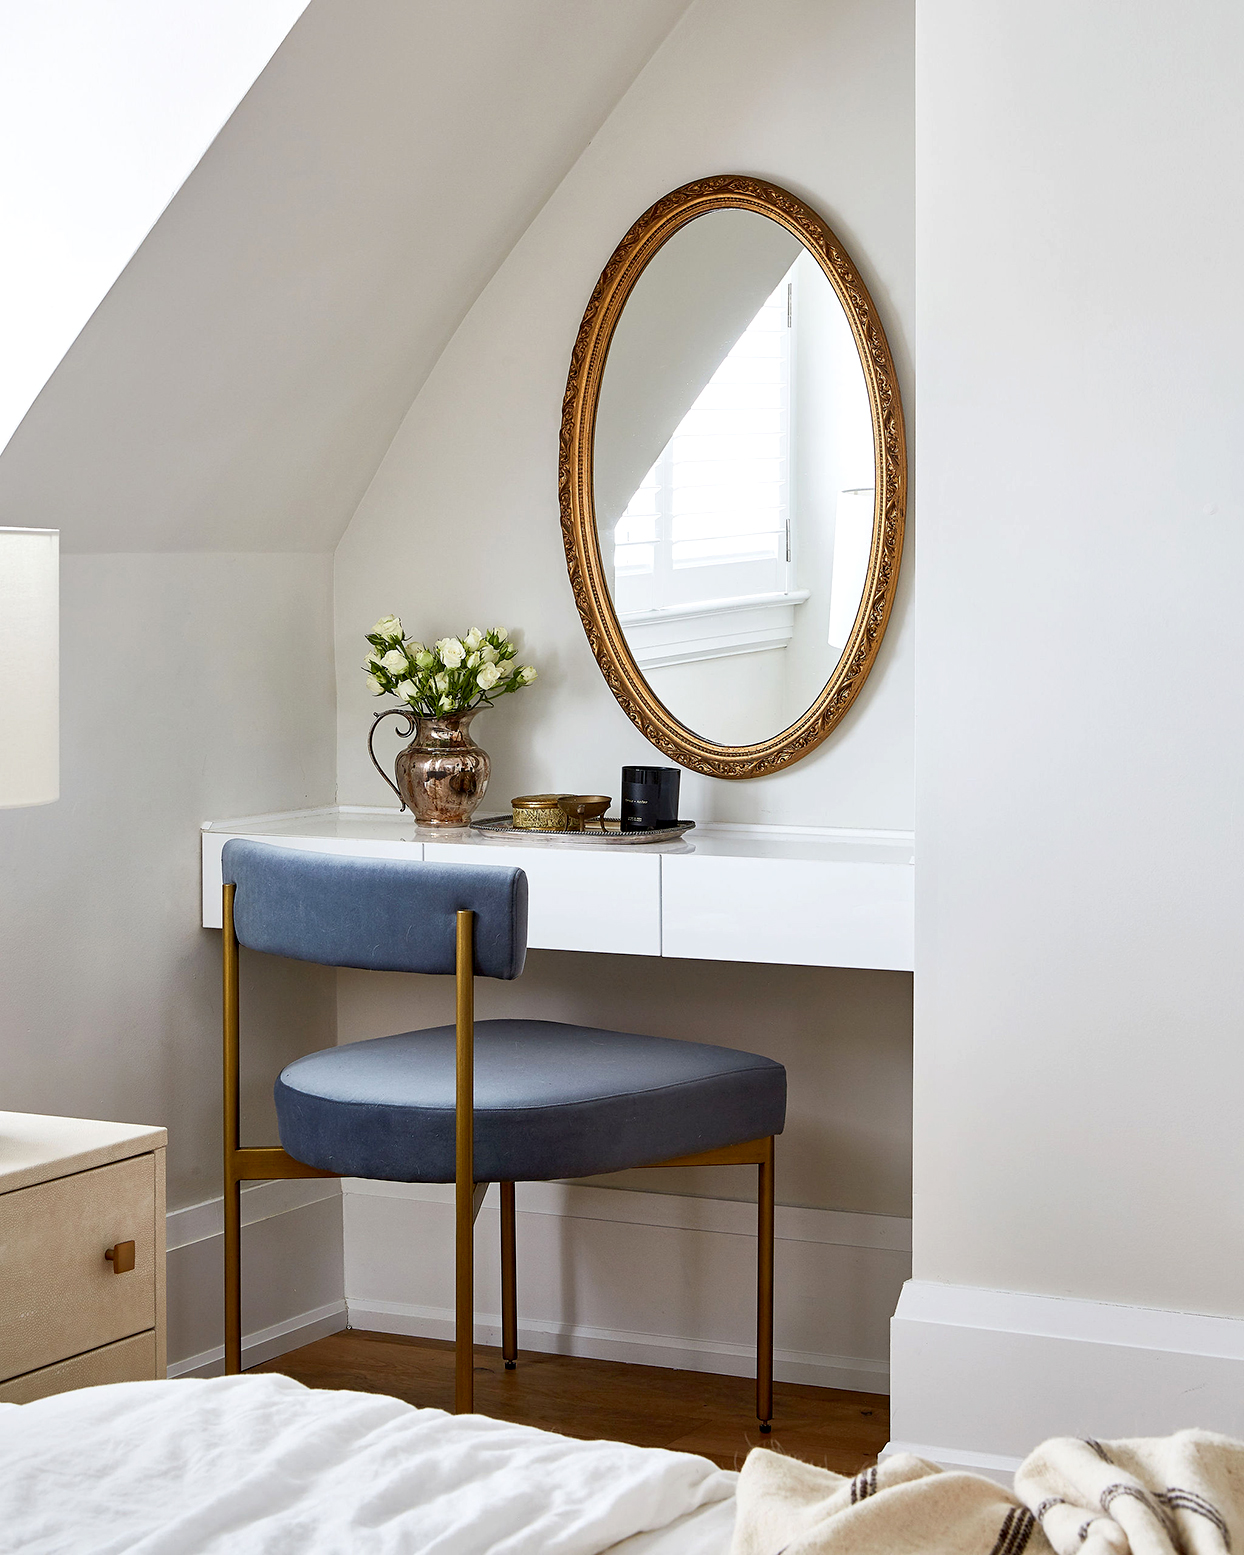 A nook turned into a vanity